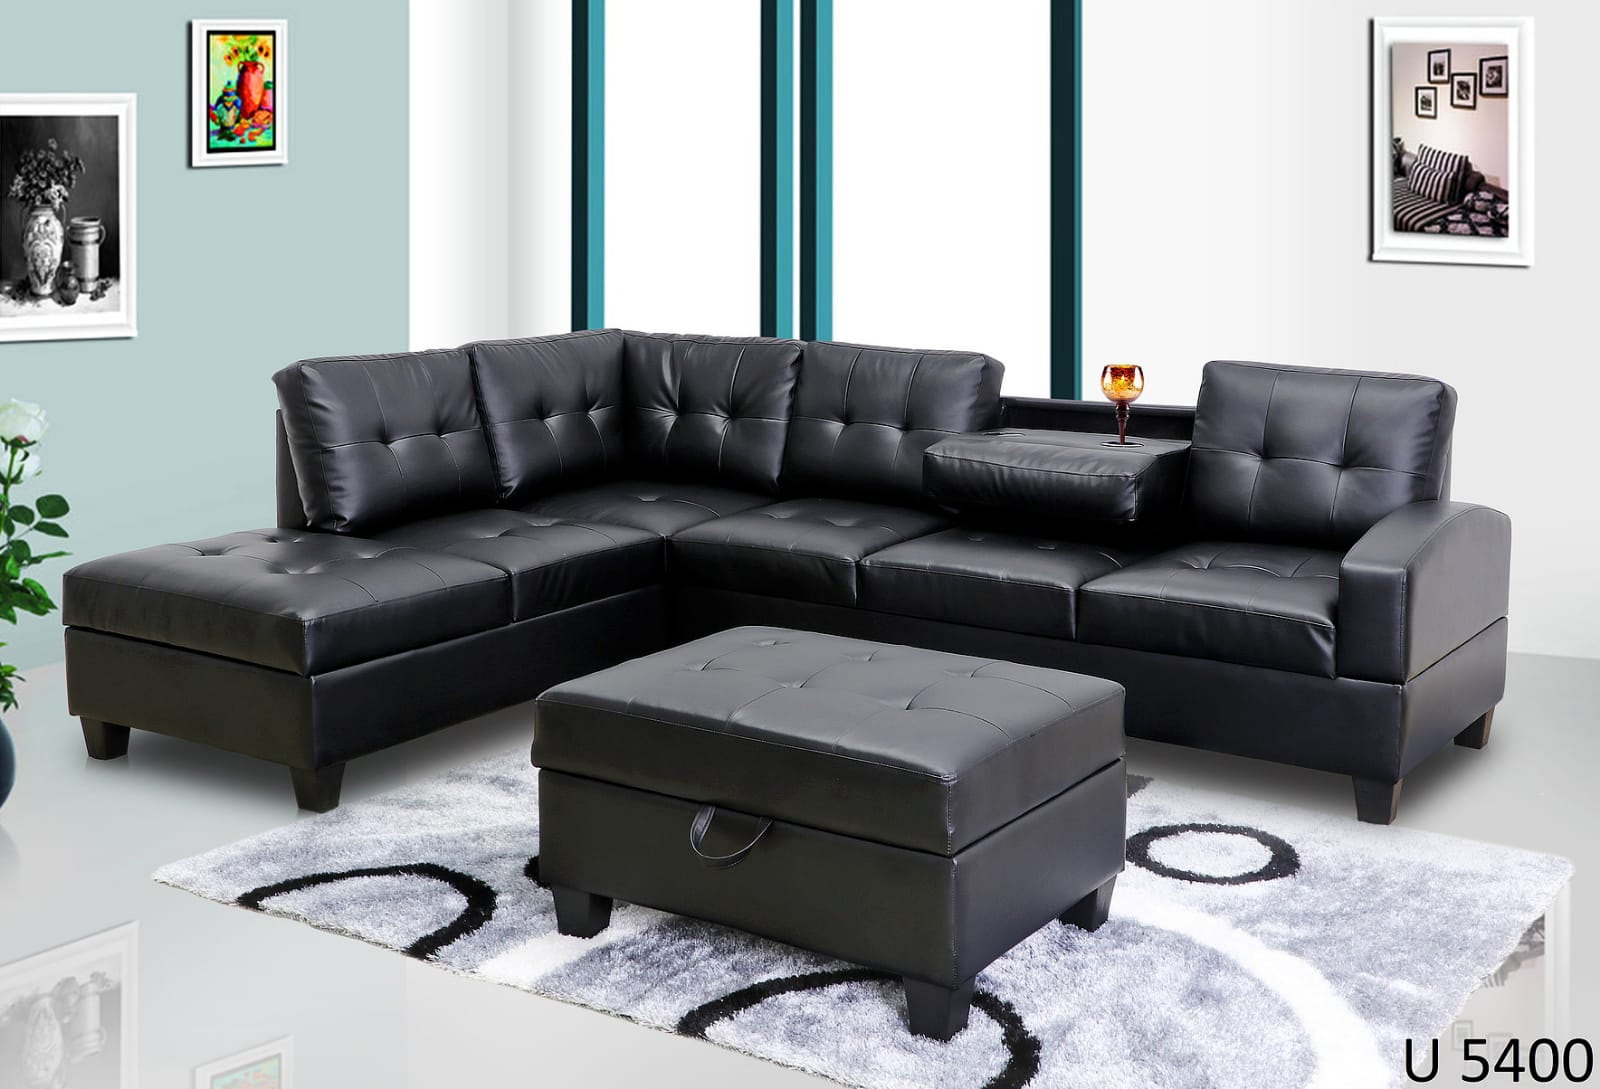 2pc Sectional With Ottoman